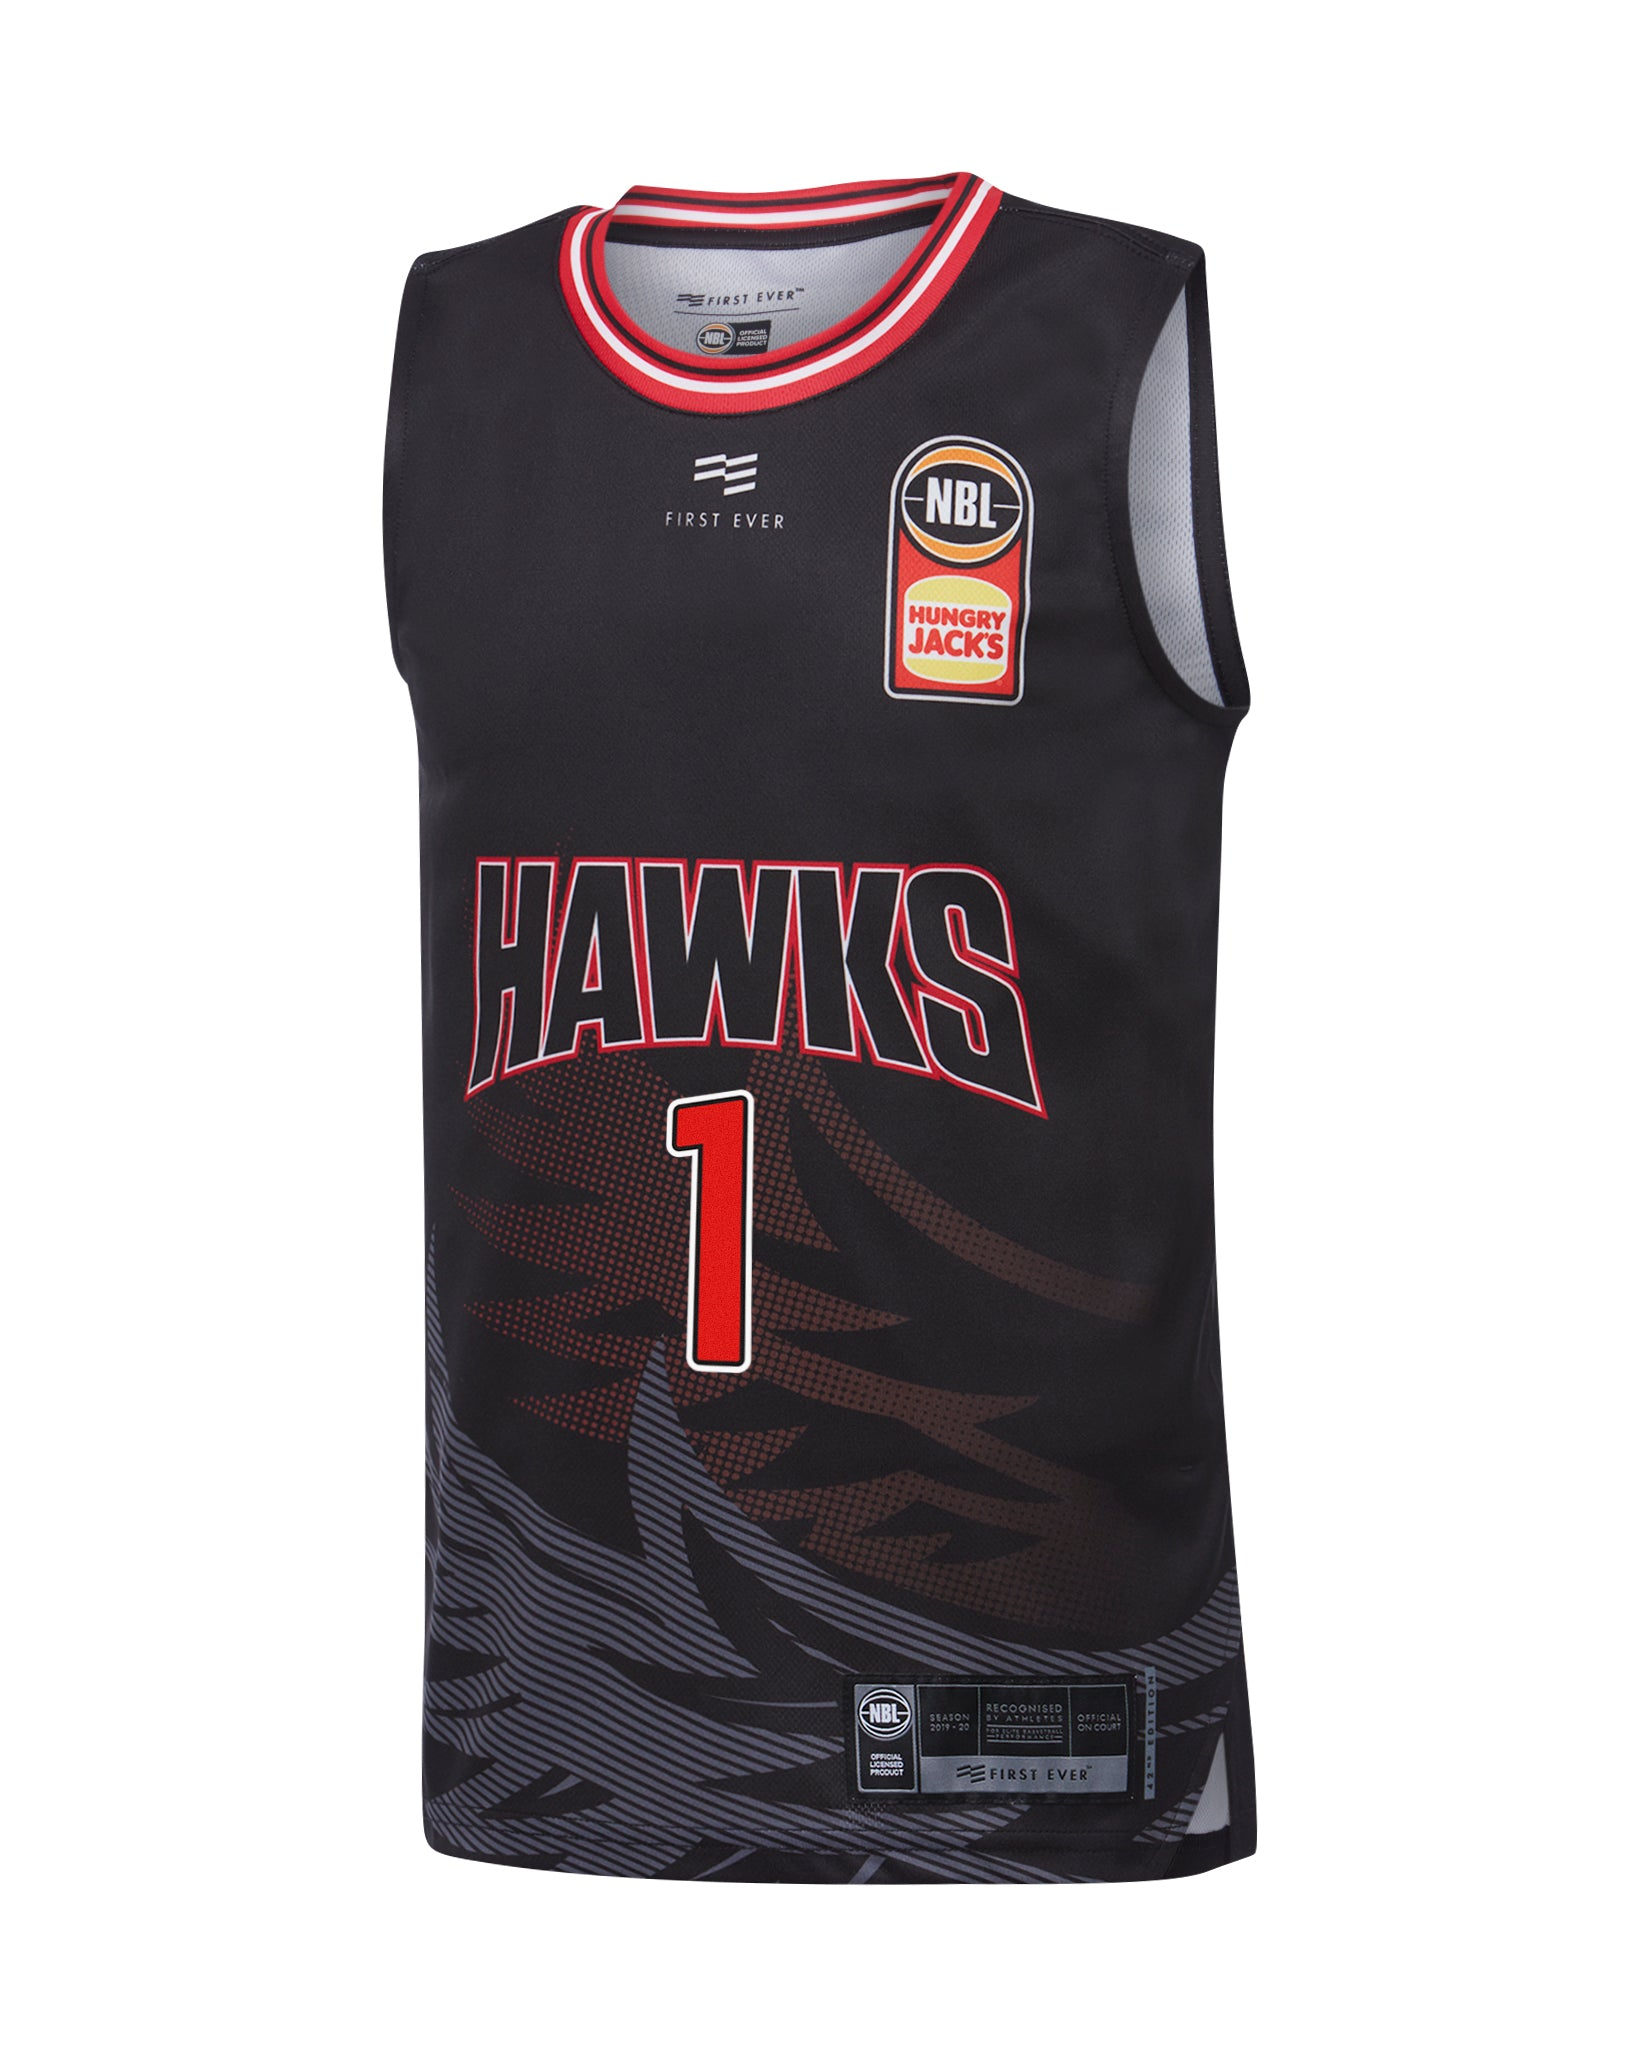 illawarra-hawks-19-20-youth-authentic-home-jersey-lamelo-ball - Front Image